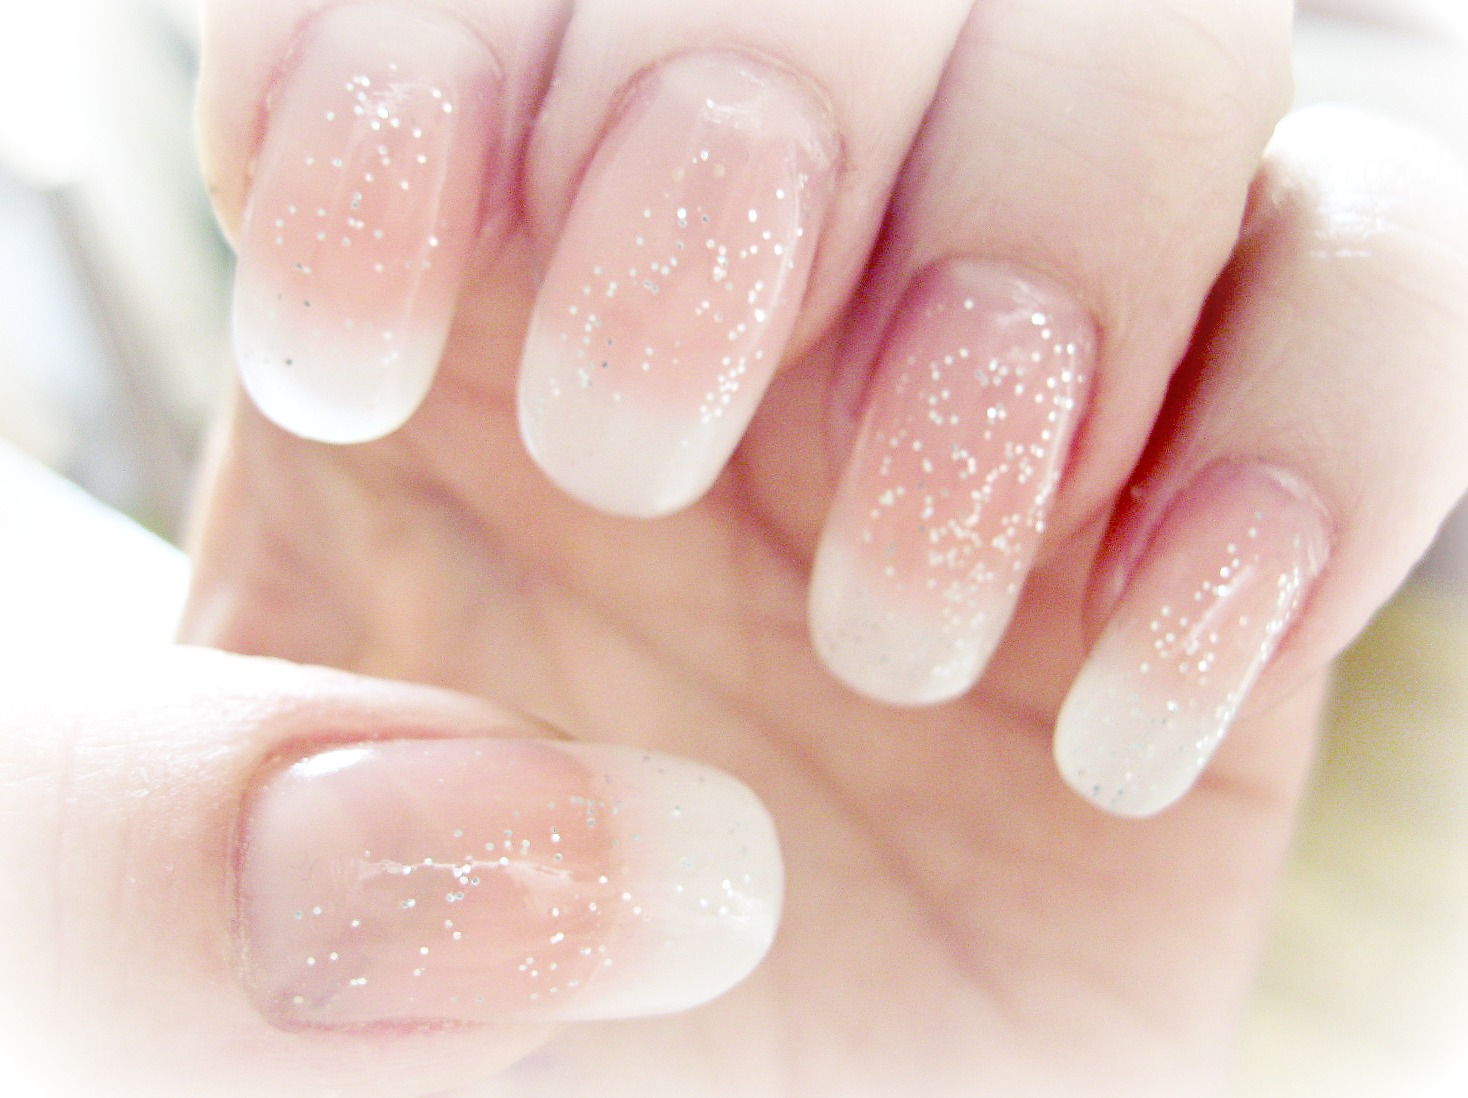 ...Make It With Me: Plain Gel Nails